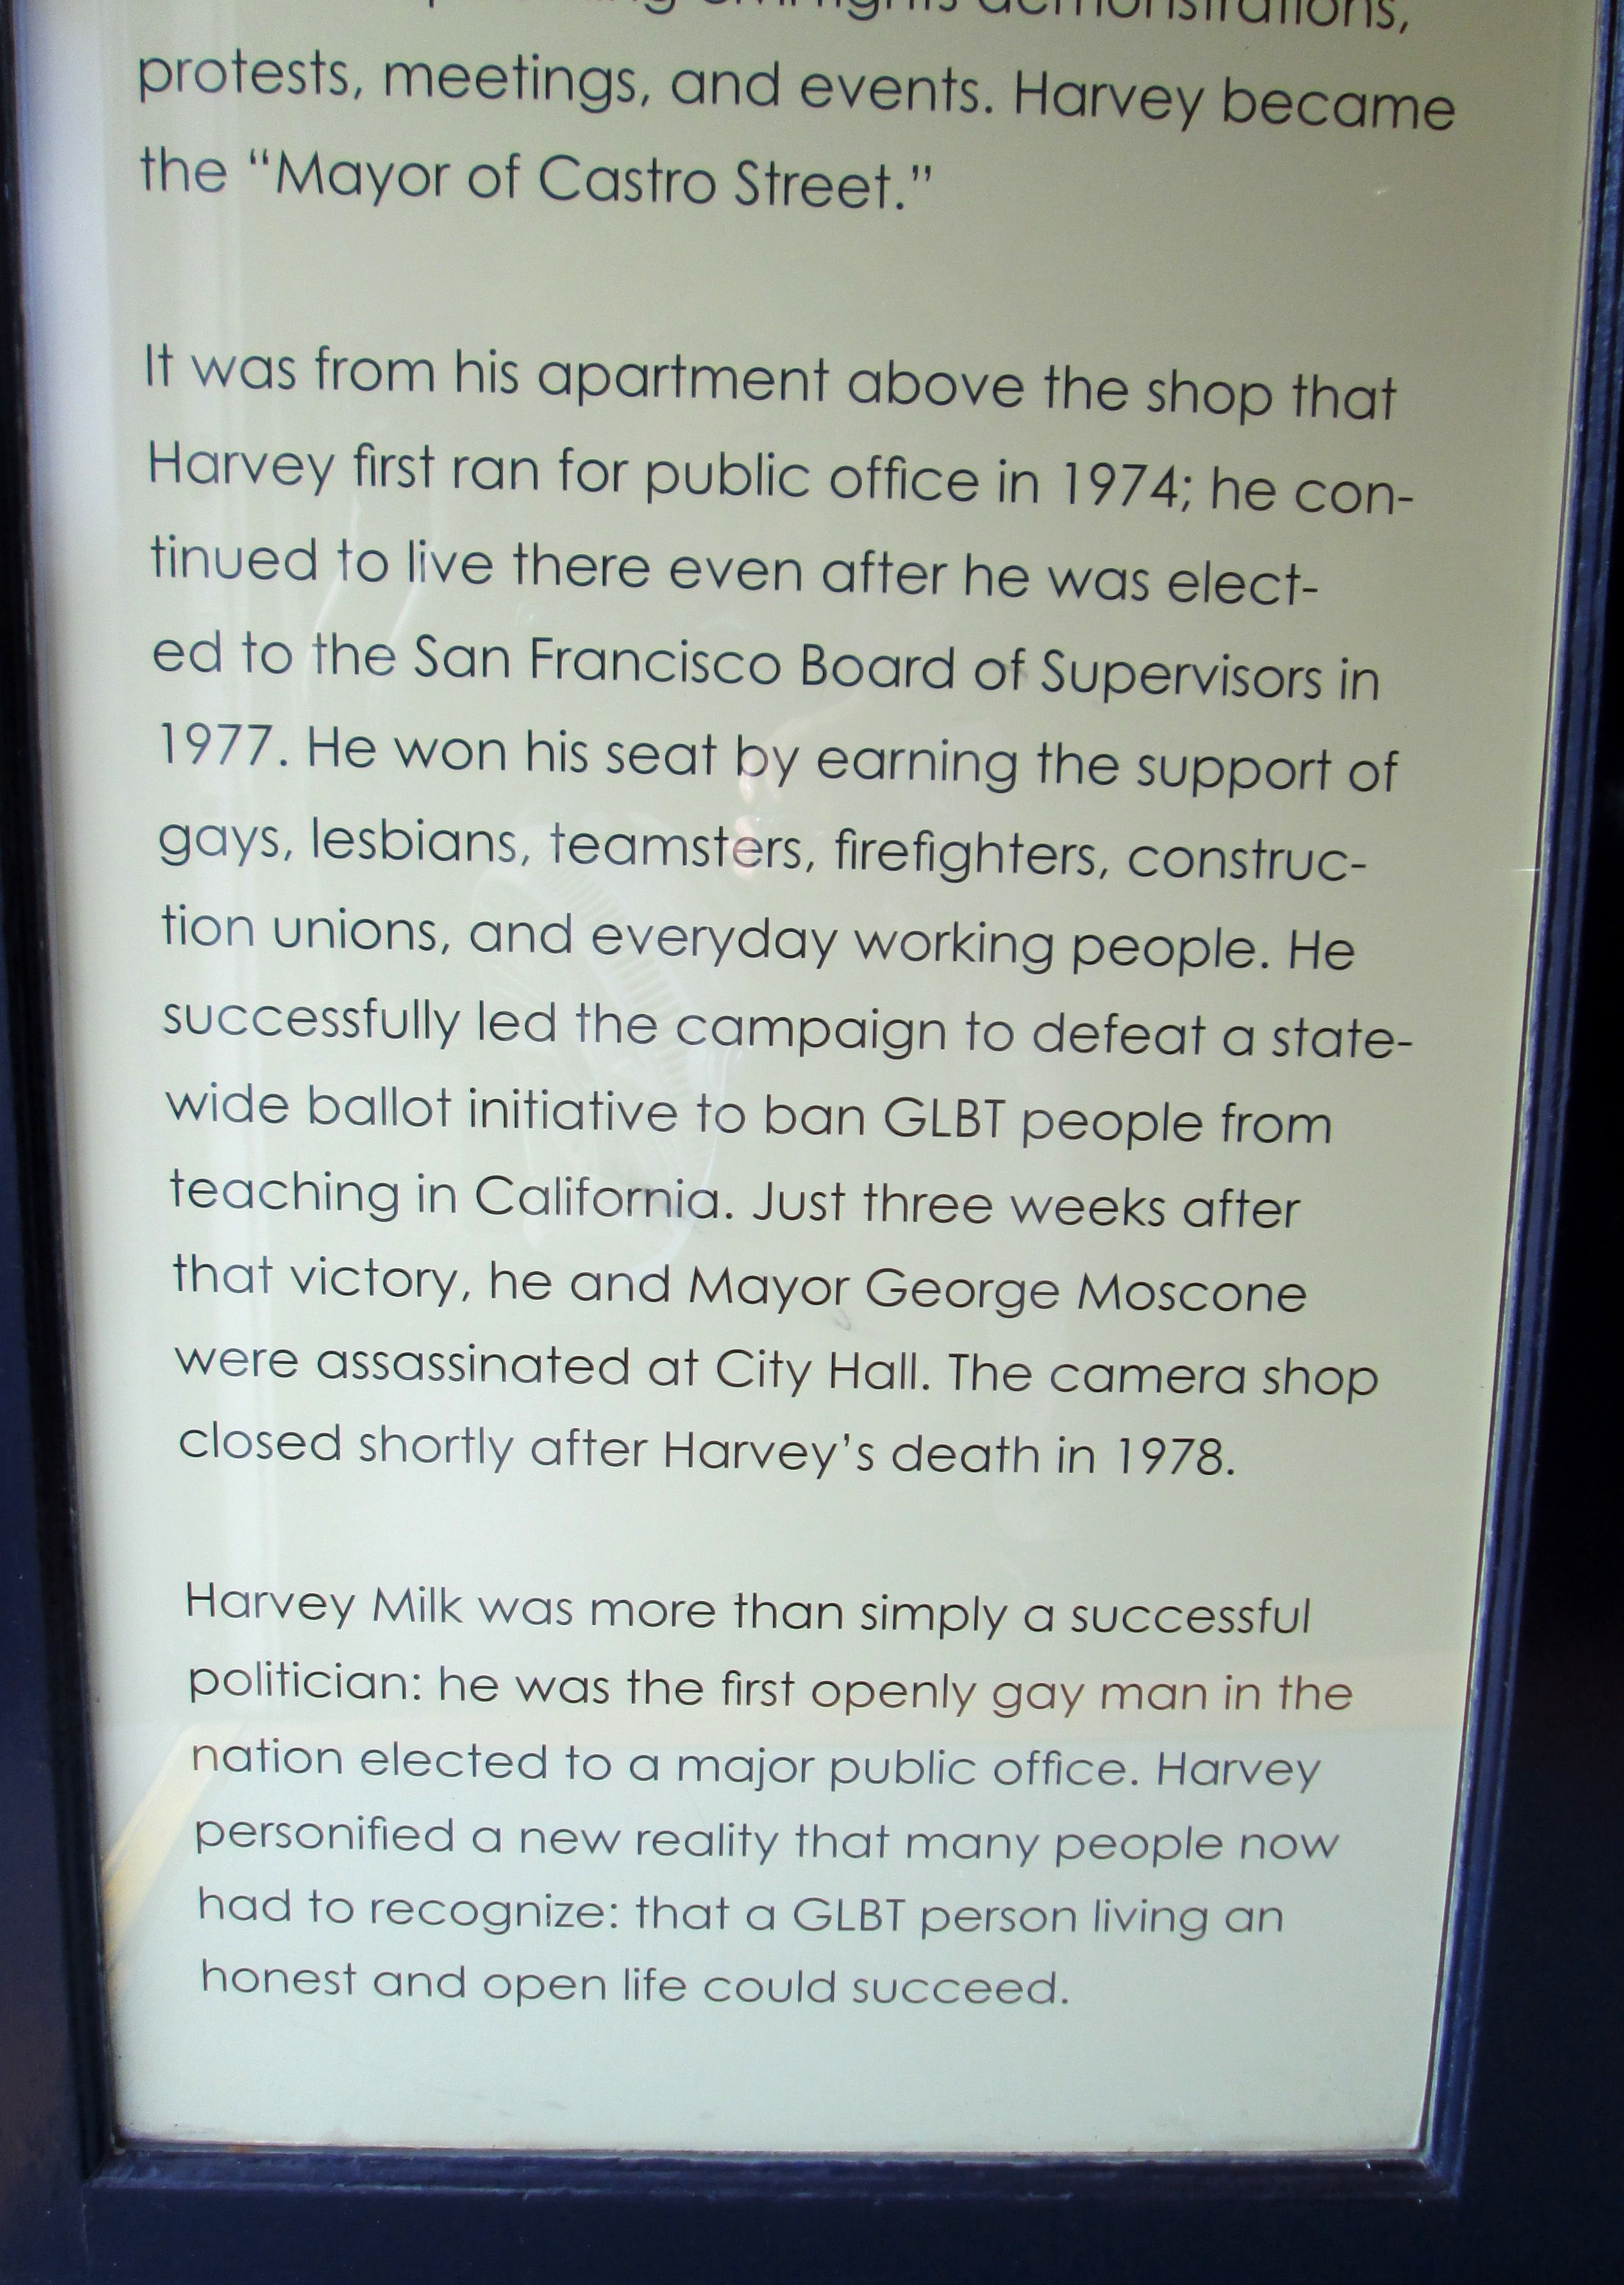 from Ali harvey milk gay movement quote